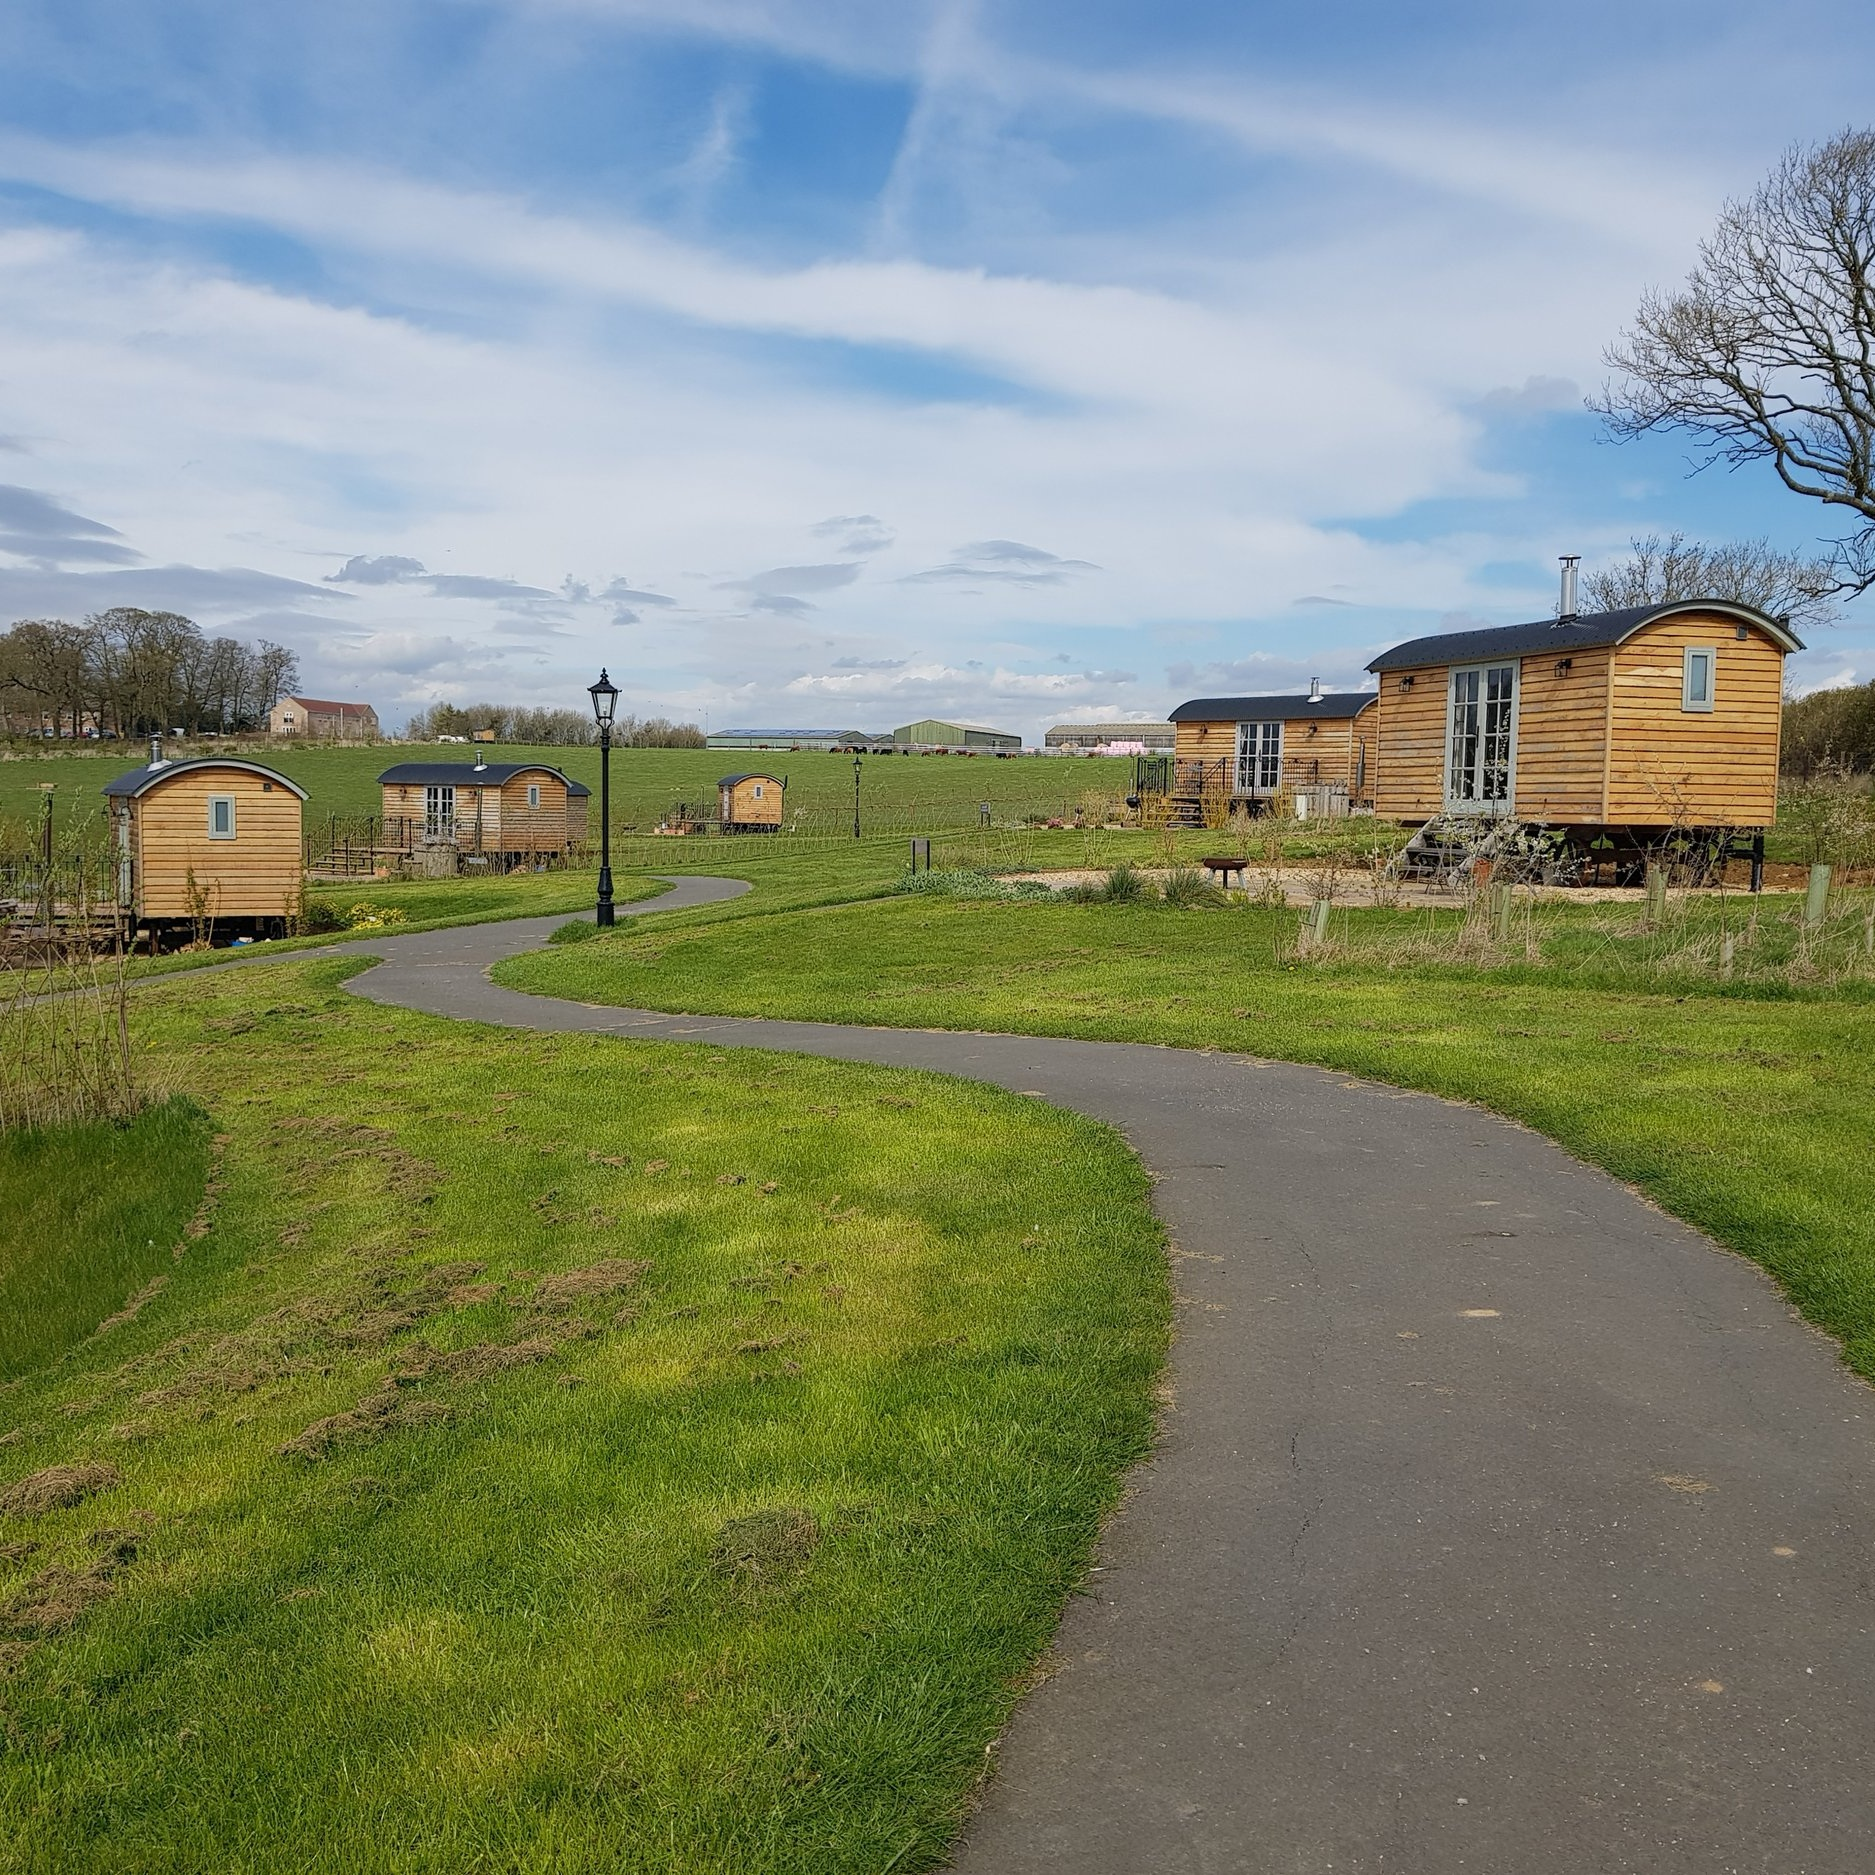 Glampsite design - View our completed glamping and holiday site projects for commercial clients.